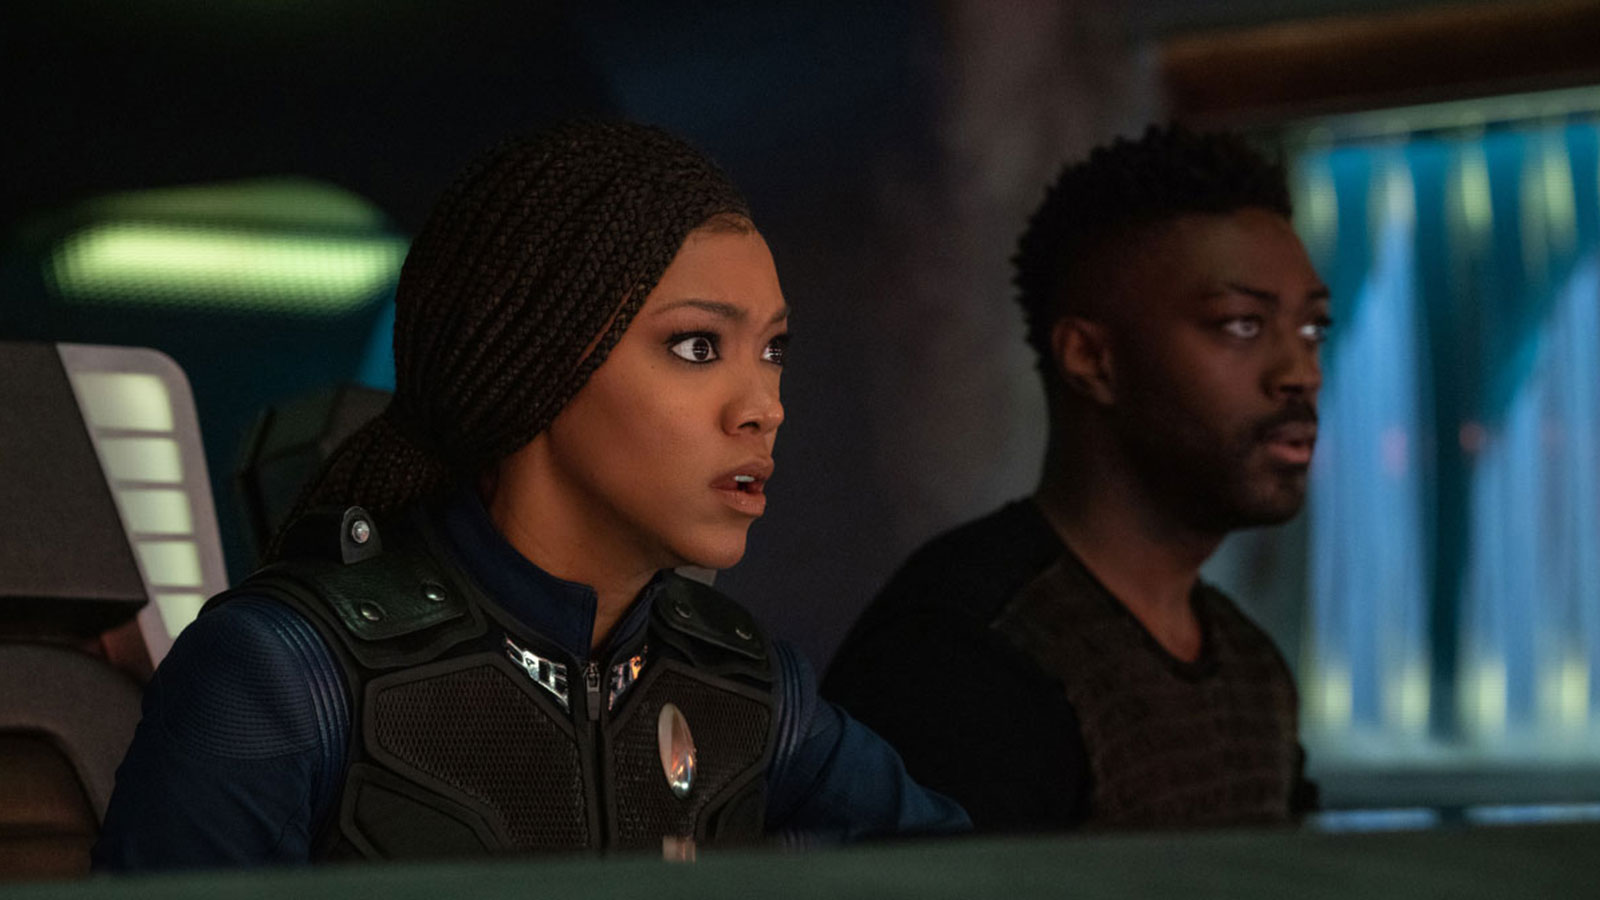 """Preview: Star Trek: Discovery - Season 3, Episode 12 """"There Is A Tide..."""" New Photos + Video Sneak Peek"""